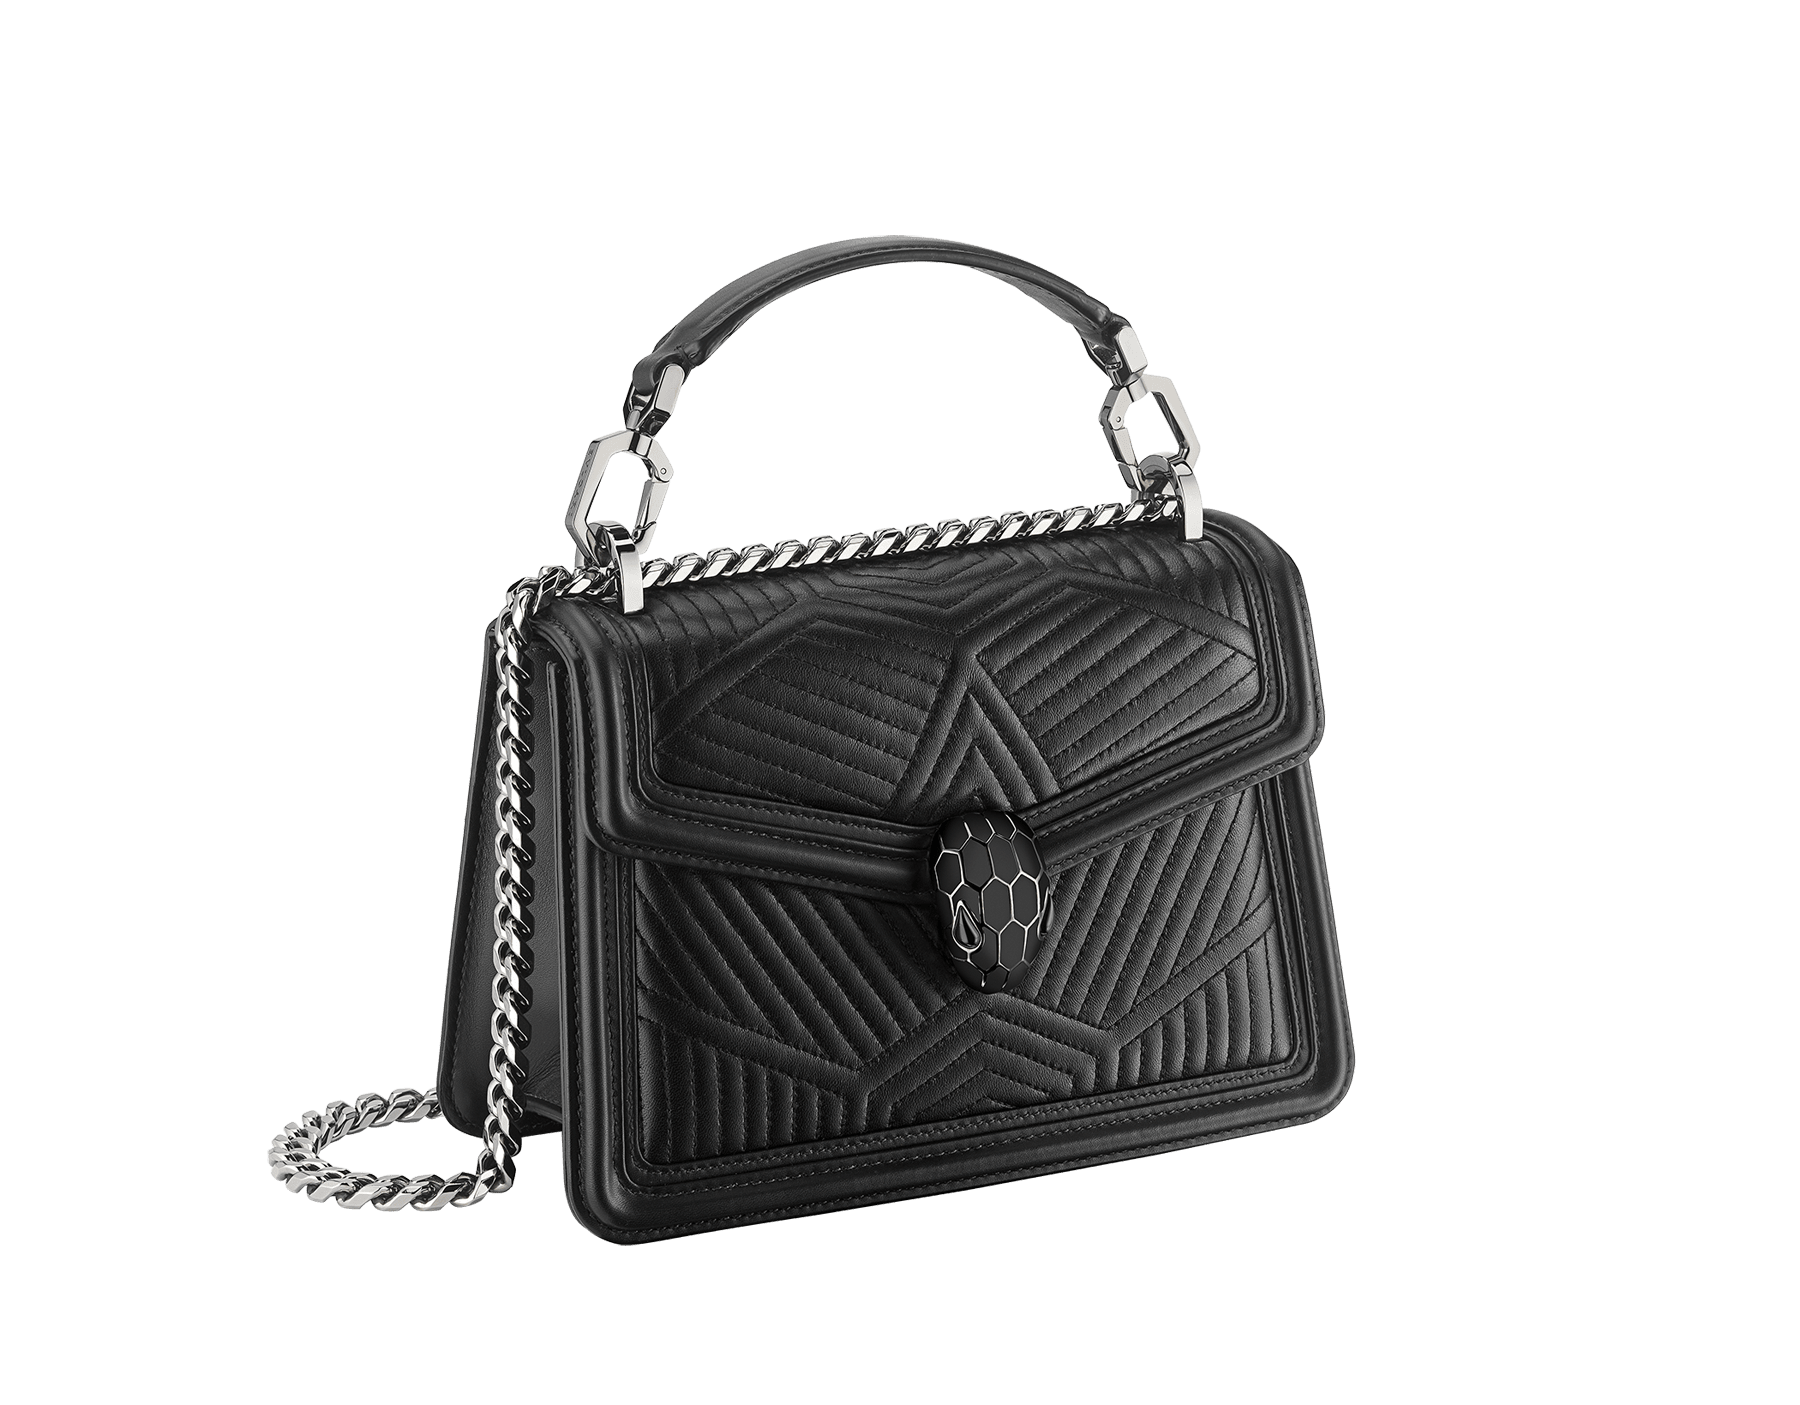 """Serpenti Diamond Blast"" crossbody bag in white agate quilted nappa leather and berry tourmaline smooth calf leather frames. Tempting snakehead closure in light gold-plated brass enhanced with matte black and shiny berry tourmaline enamel and black onyx eyes. 1063-FQDa image 2"